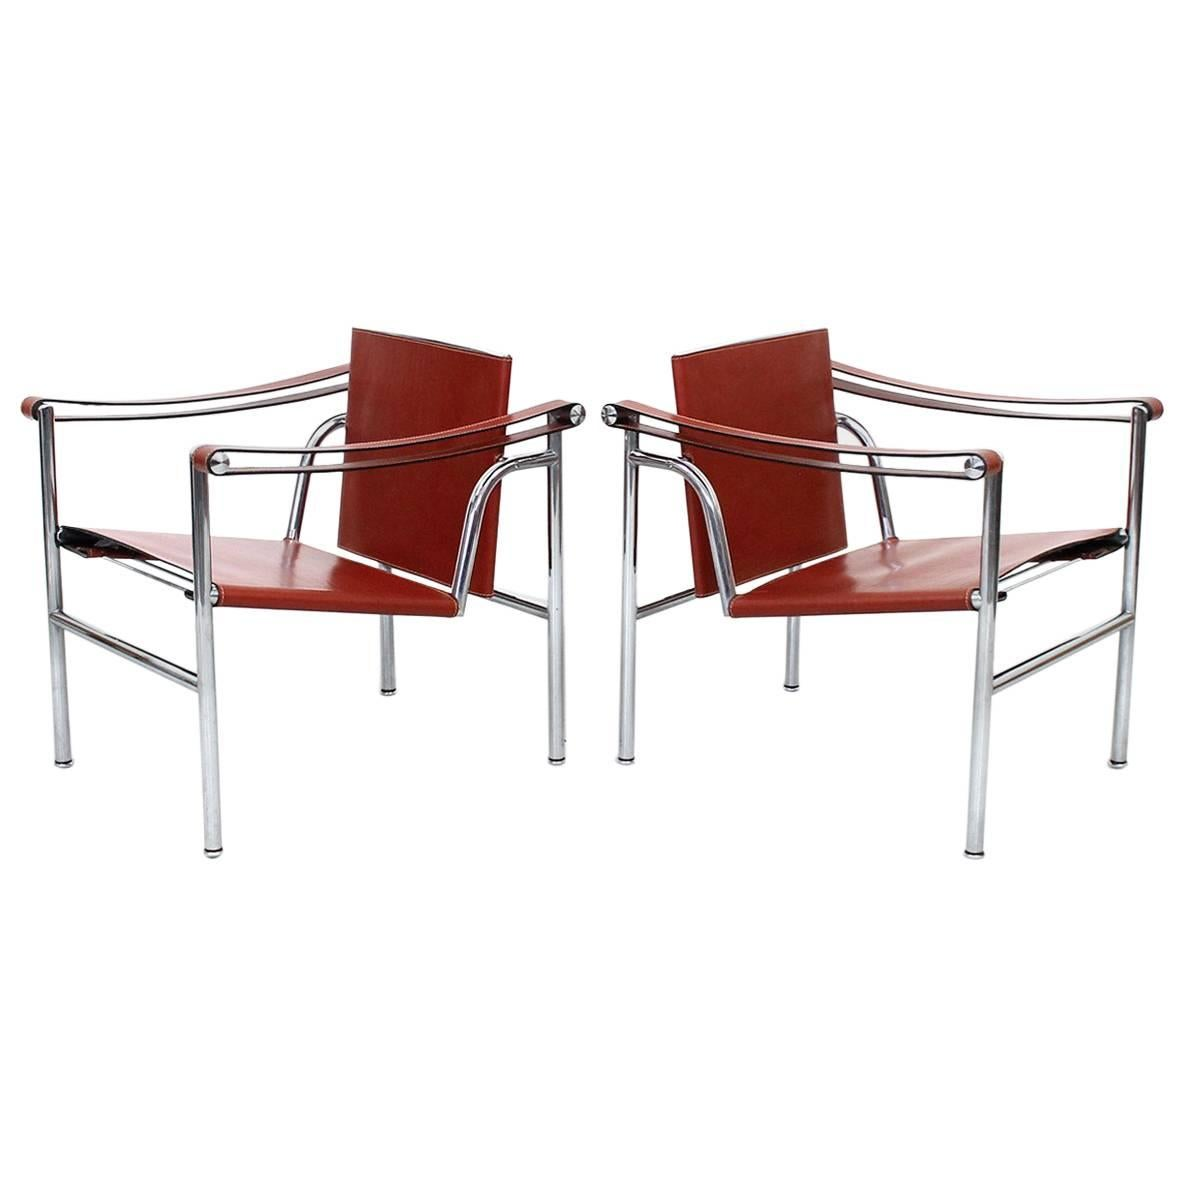 Merveilleux Pair Of Le Corbusier LC1 Lounge Chairs For Cassina